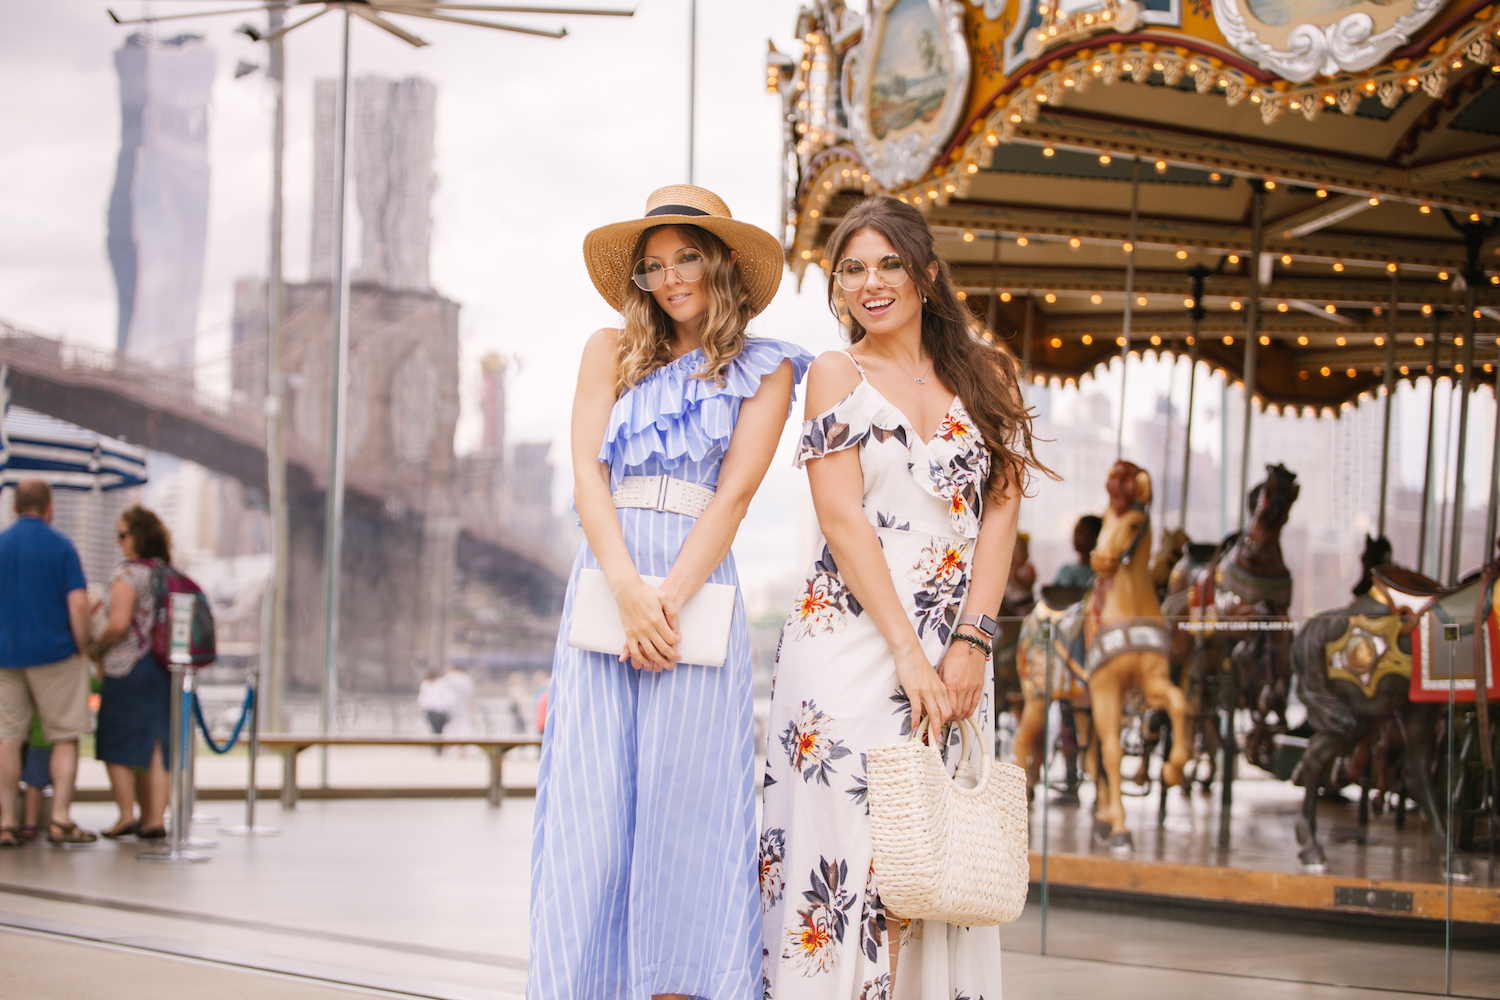 shein-collaboration-allbuenothings-sheinside-summer-dresses-nyc-blogger-dumbo